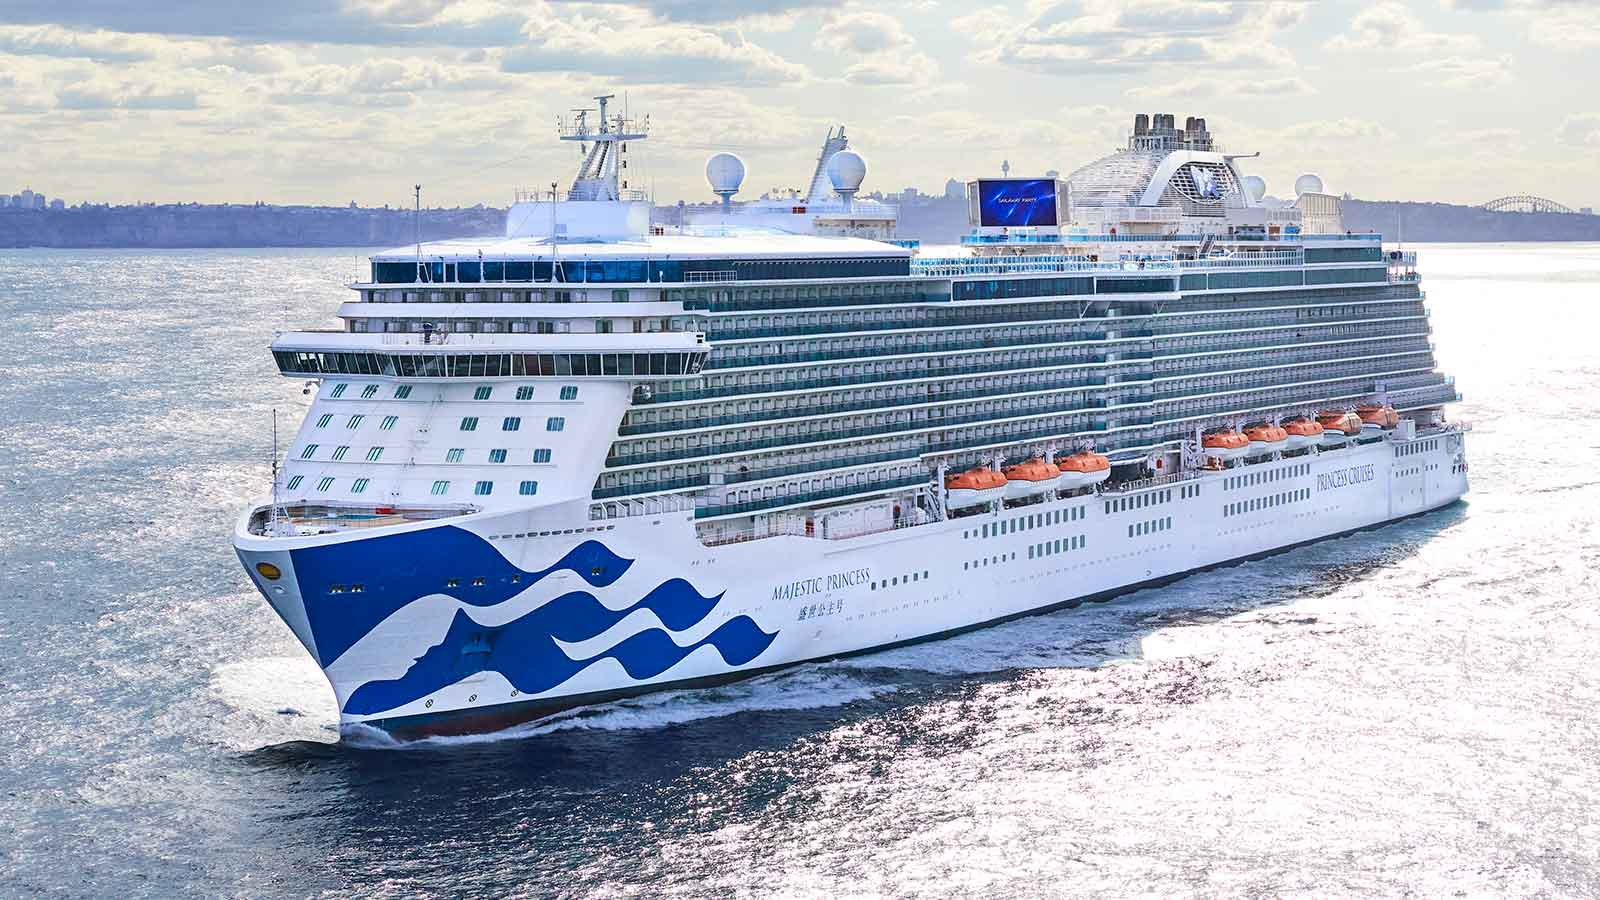 Will Cruise Lines Keep Their Plans for New Cruise Ships in 2021 and 2022? |  Cruise.Blog